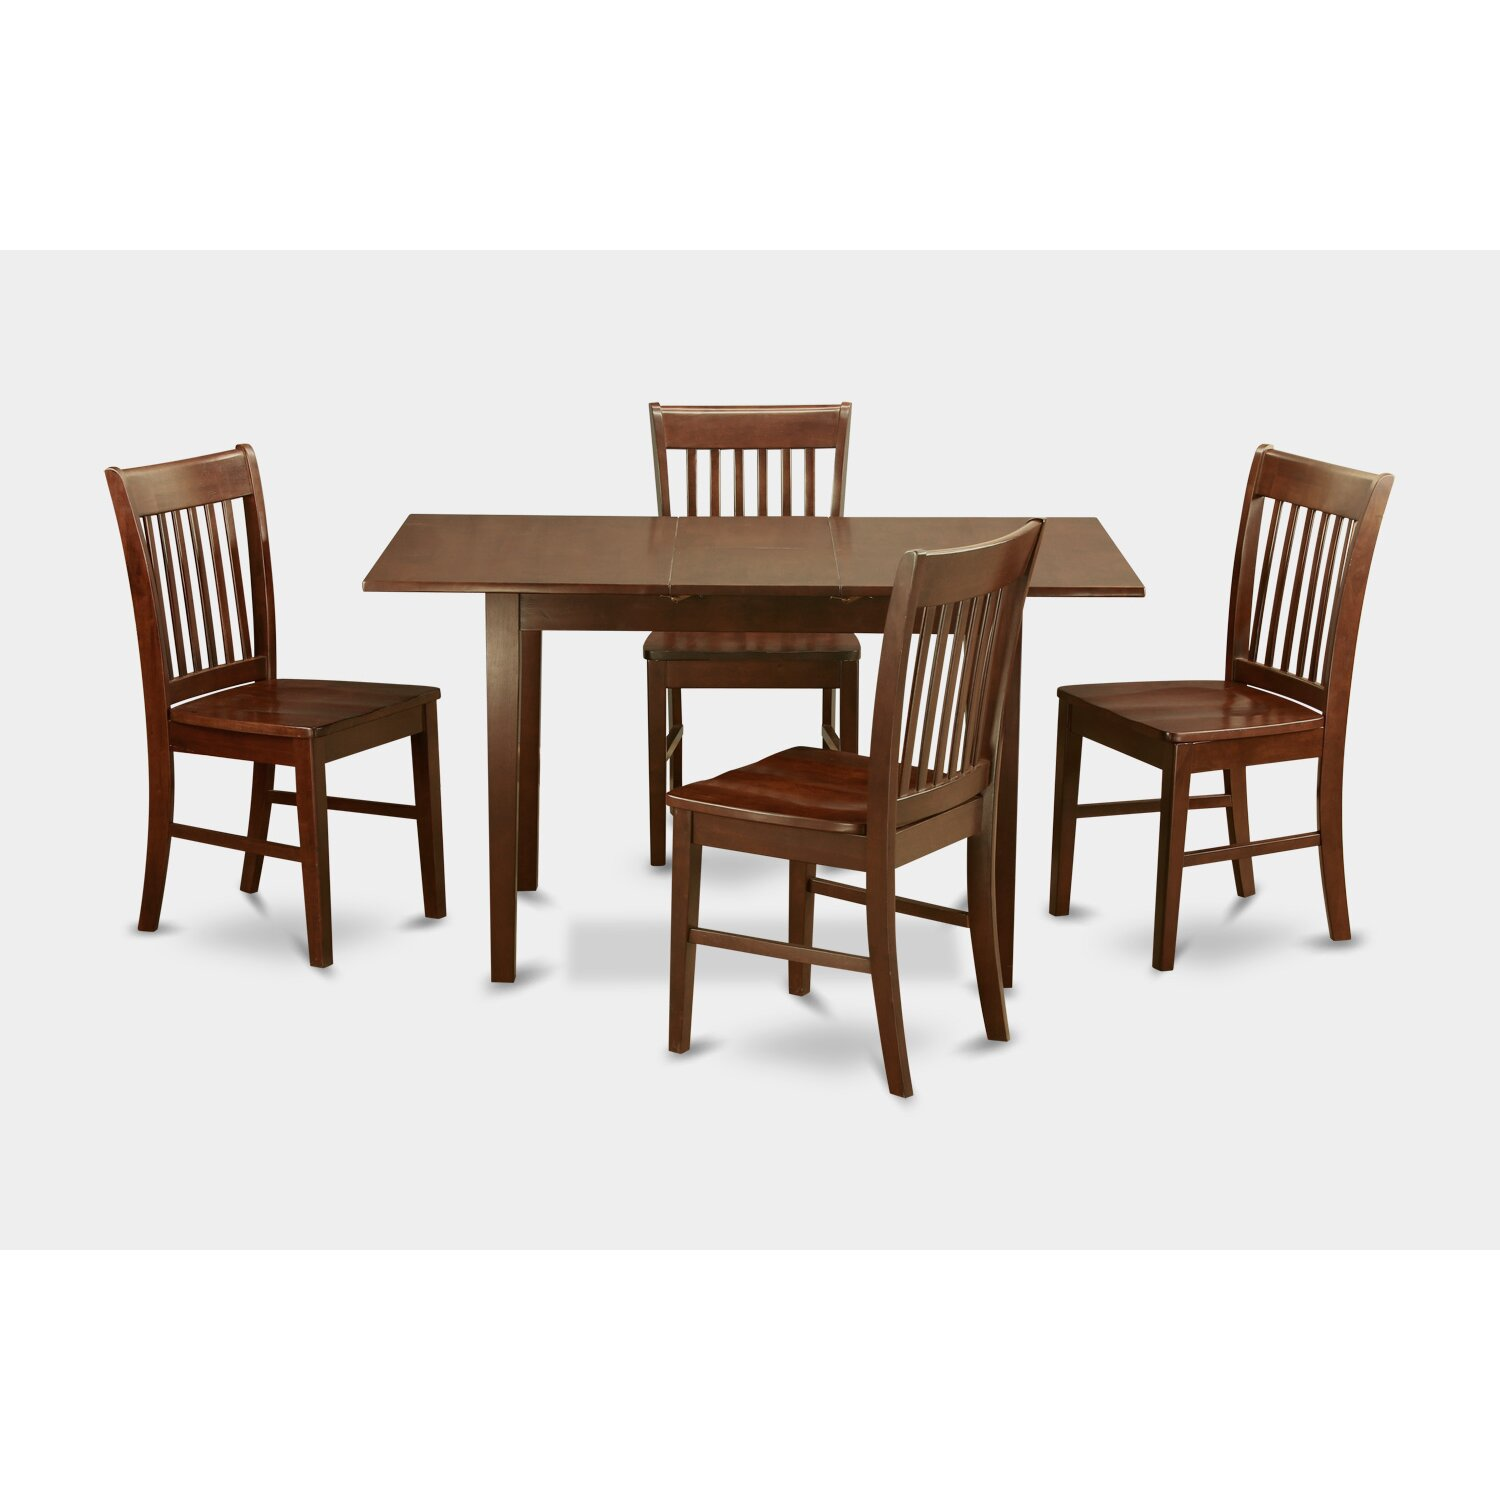 East west norfolk 5 piece dining set reviews wayfair for 5 piece dining set